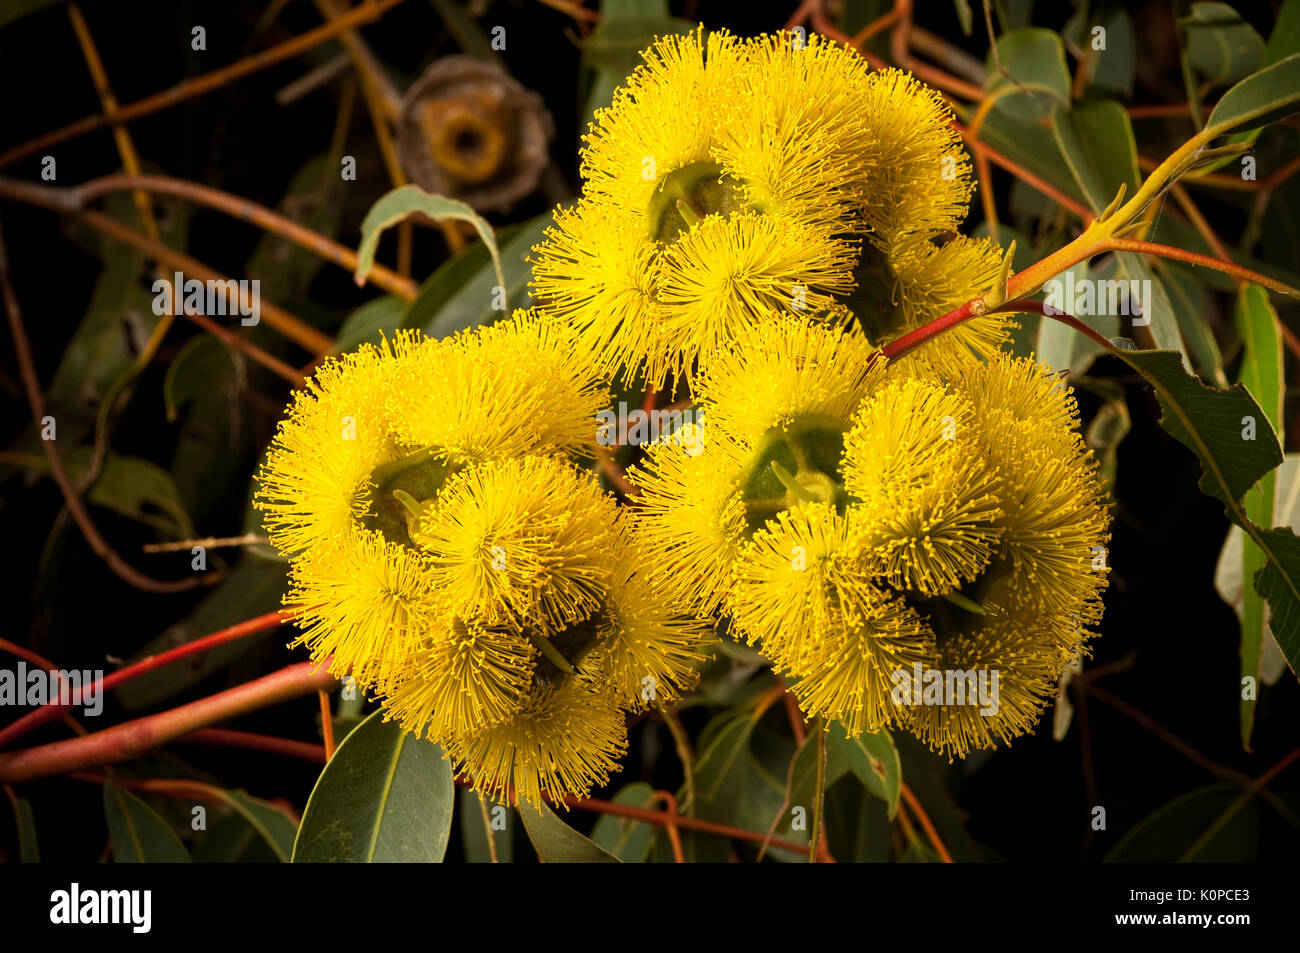 Eucalyptus erythrocorys. or Red Capped Gum flower. - Stock Image